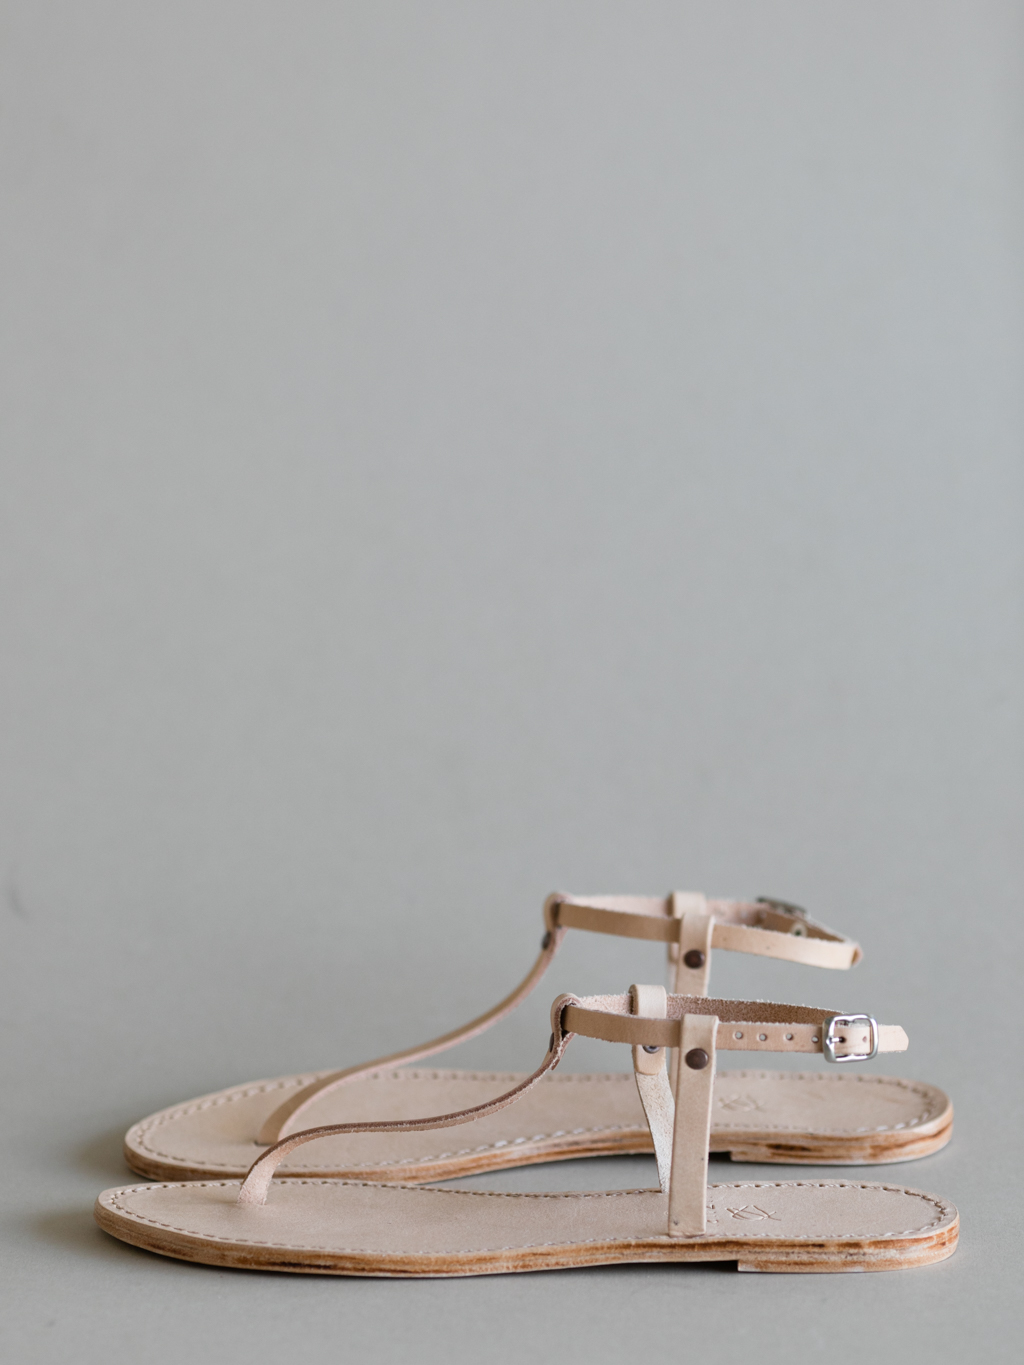 Delicate, yet diverse & just as durable as the MOJA or FUNDO, these all-leather sandals are the perfect companion to breezy summer skirts or sun drenched & sand filled beach days. The simplicity of the design called for an unadorned colour palette of vegetable tanned leather.   PLEASE NOTE —These t-bar beauties are coming soon, but are available on pre-order if you can't wait any longer.